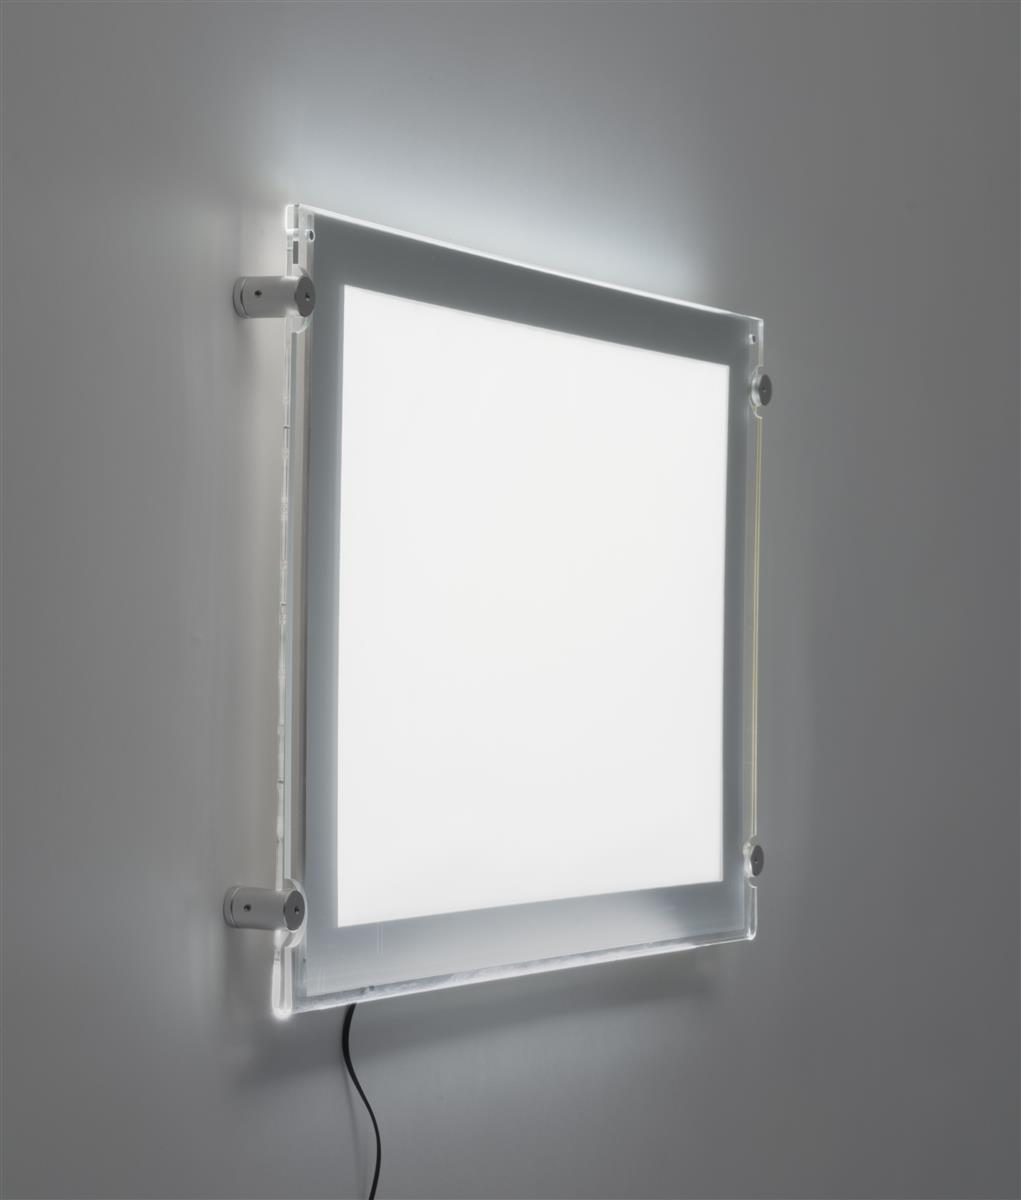 17 x 11 LED Light Box for Wall Mount, Magnetic Open – Silver